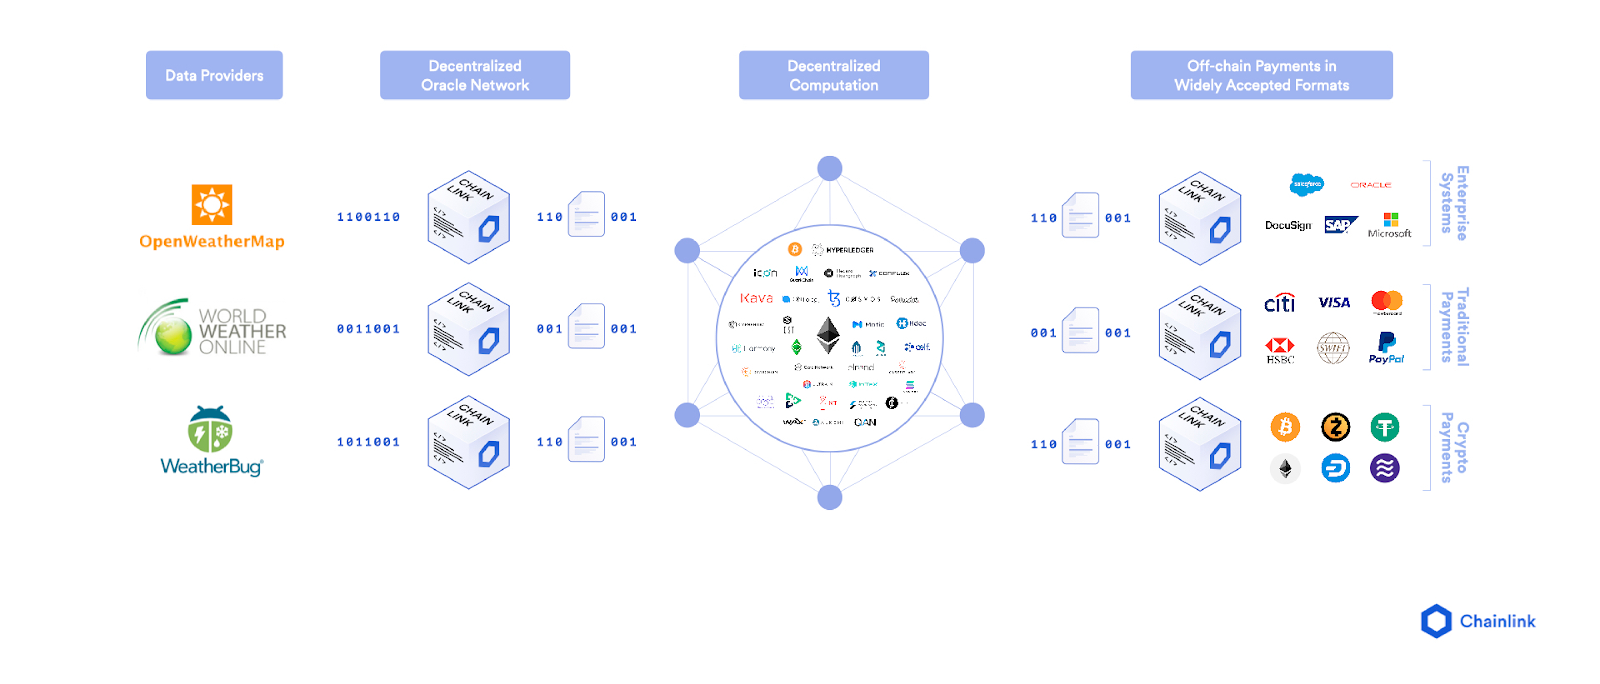 Representation of how decentralized oracles interact with on-chain and off-chain systems